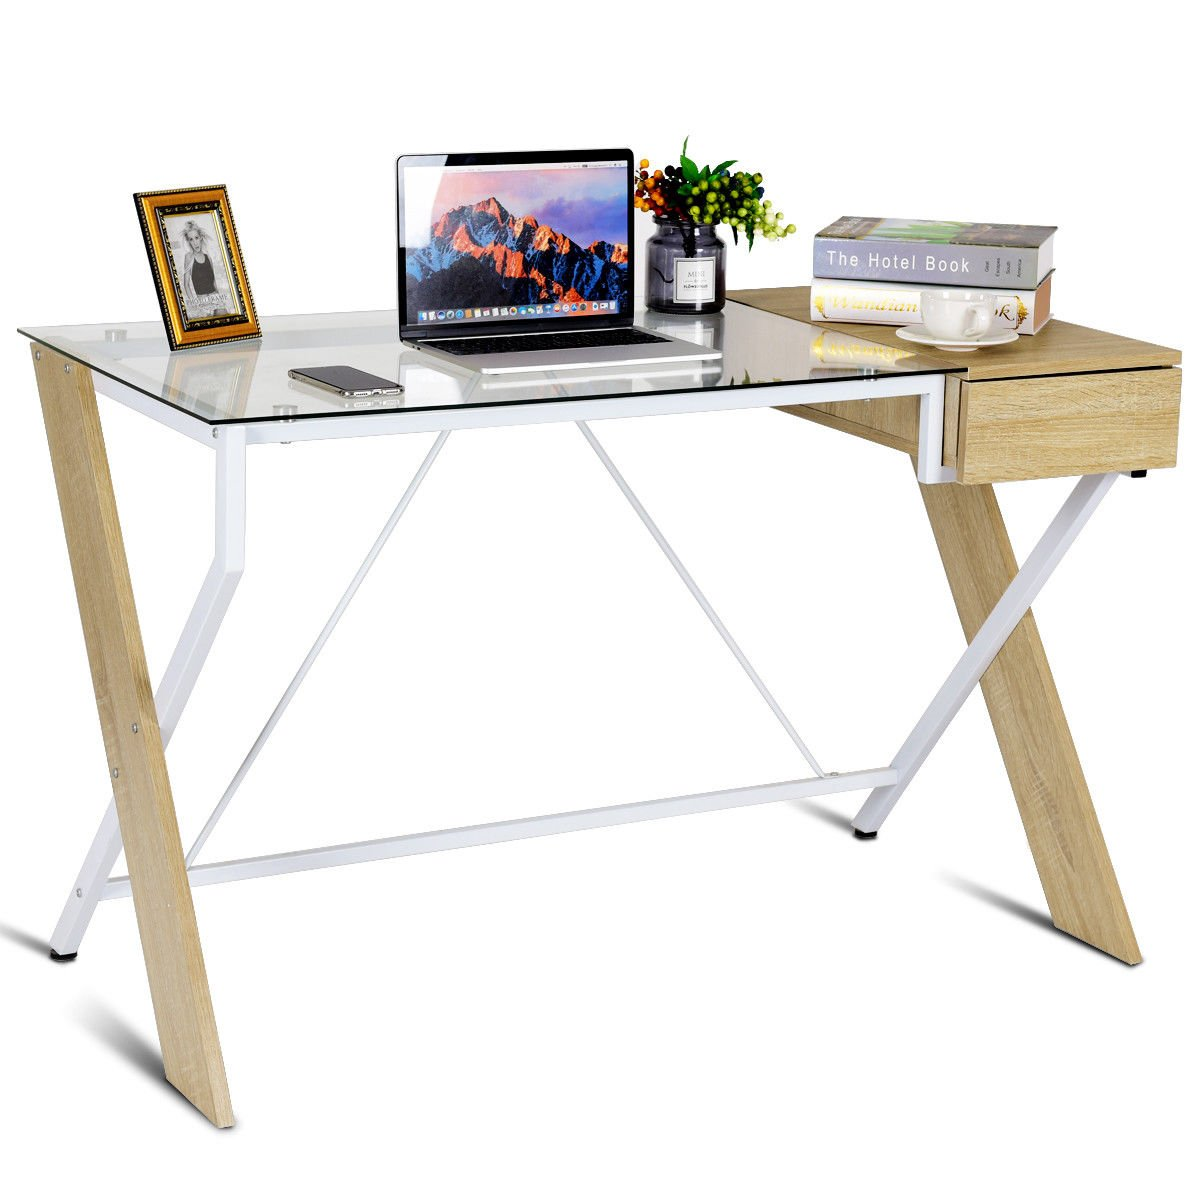 Tangkula glass top computer desk home office desk study writing desk table with storage wooden drawer sturdy steel wood construction modern compact